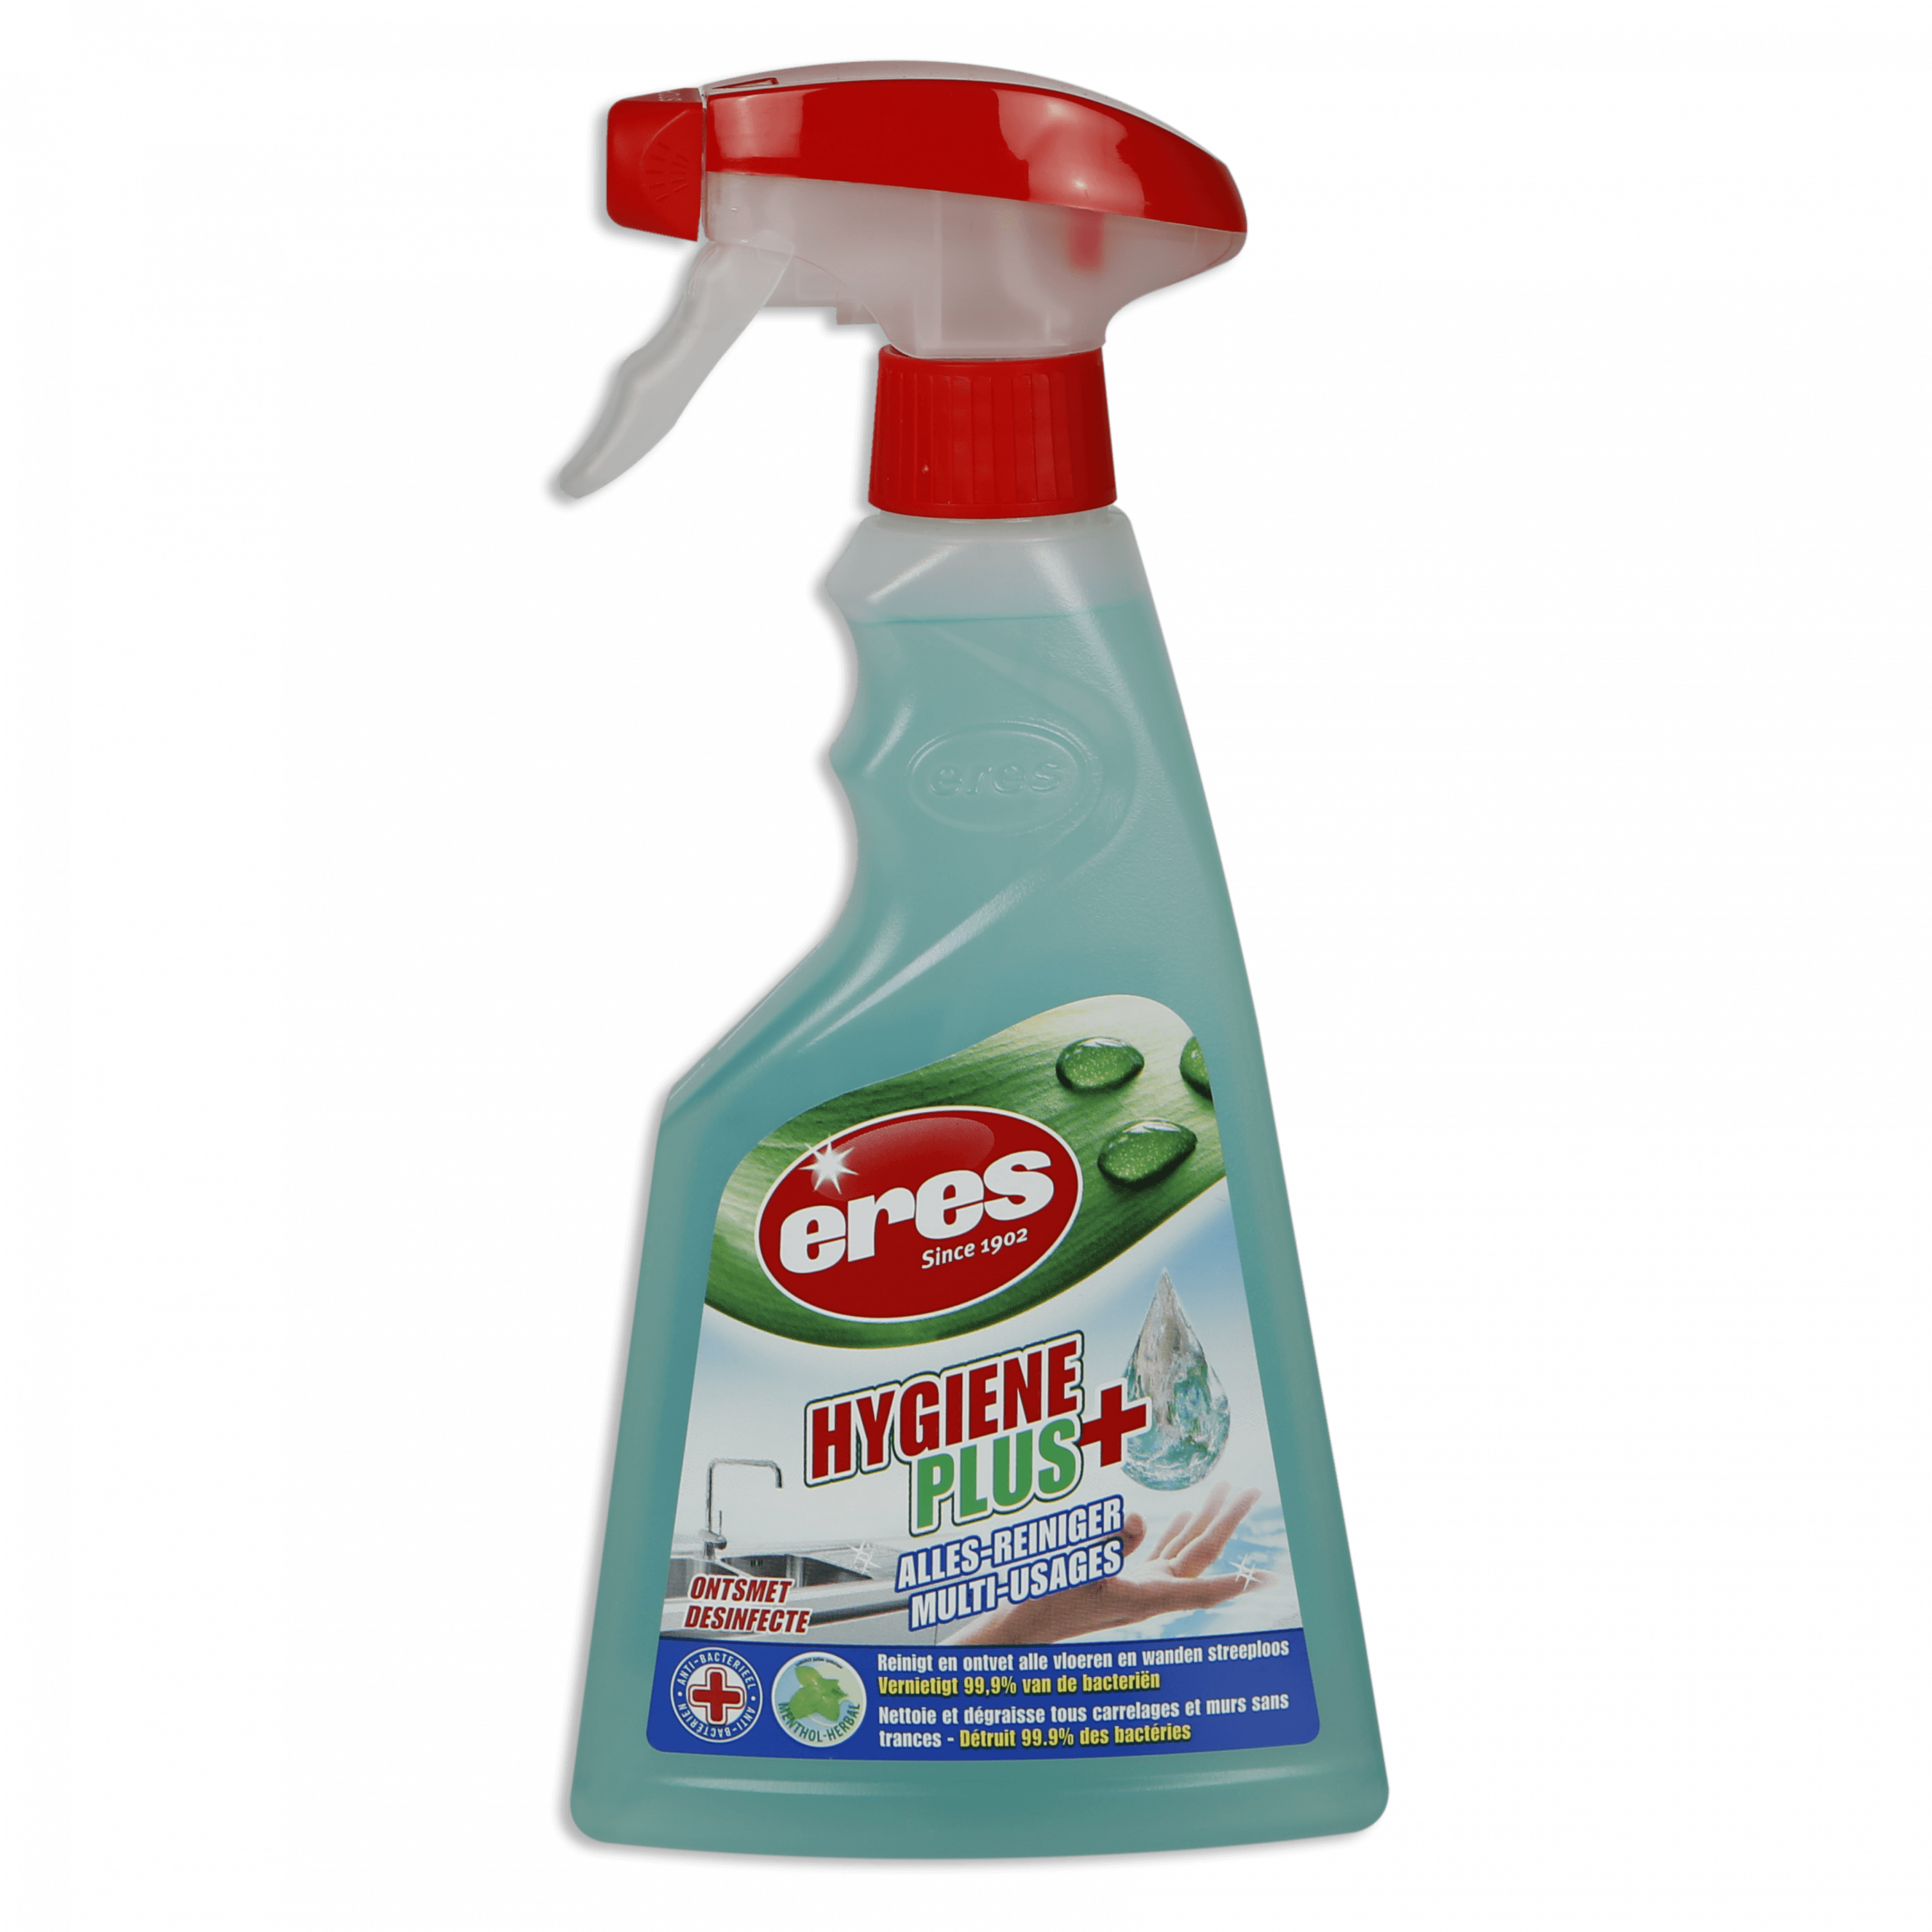 HYGIENE PLUS+ MULTI-USAGES (Nr d'autor 11317B)